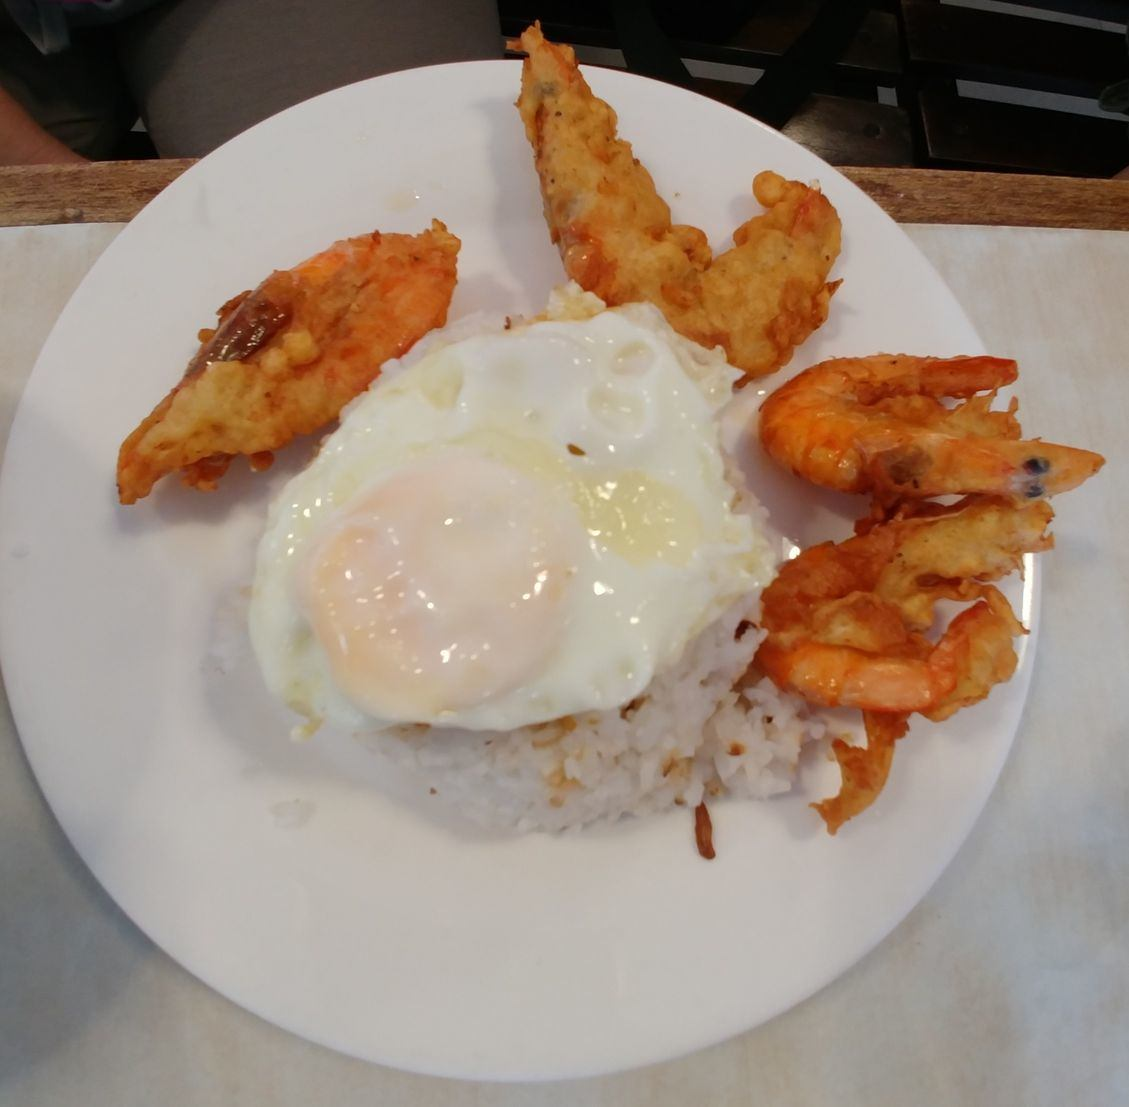 Crispy hipon or shrimp, sinangag, and itlog or hipsilog